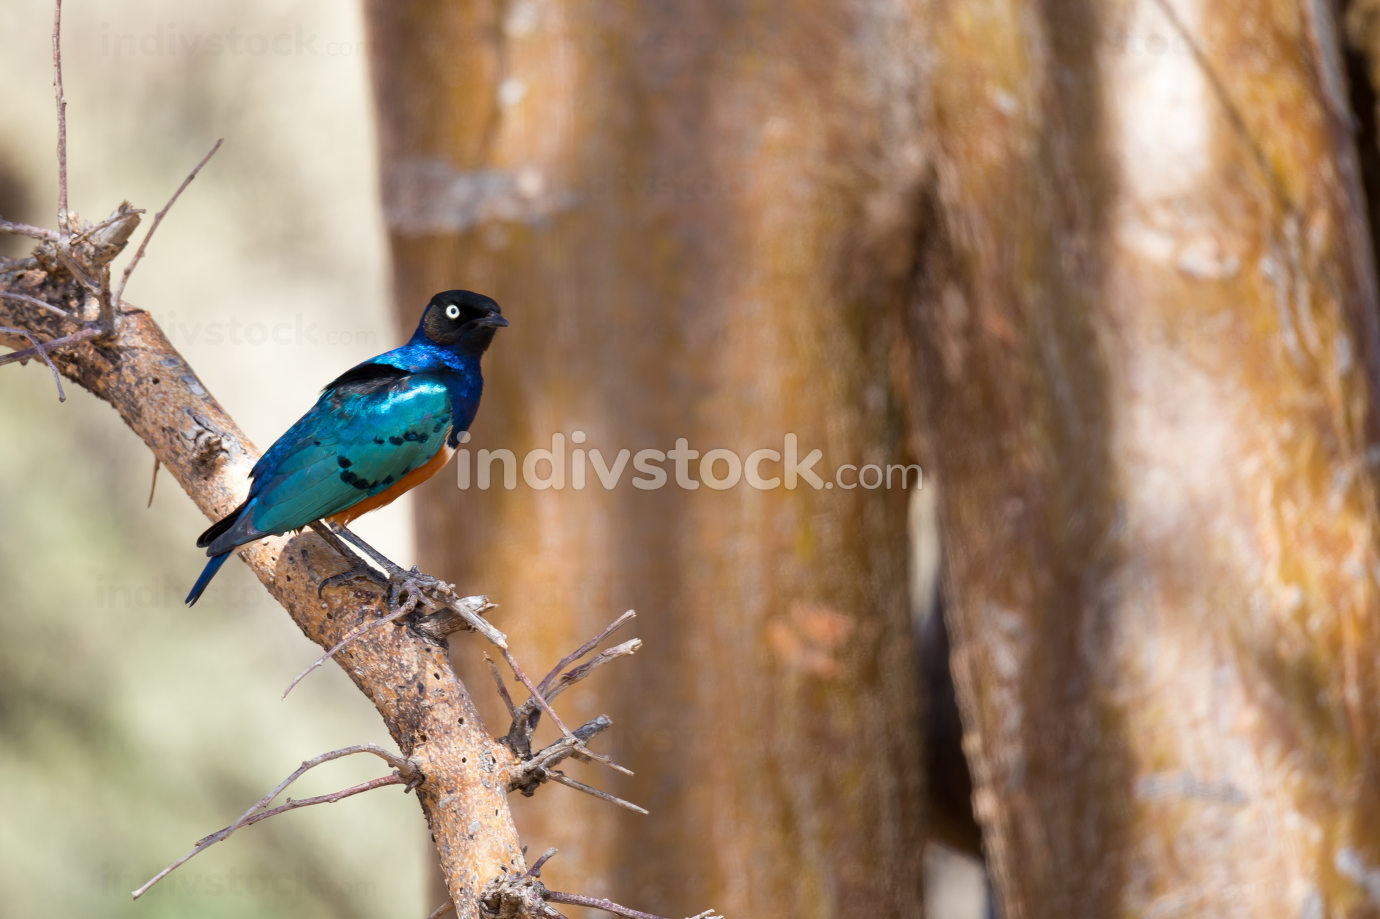 Very colorful native birds sit on brachens of trees